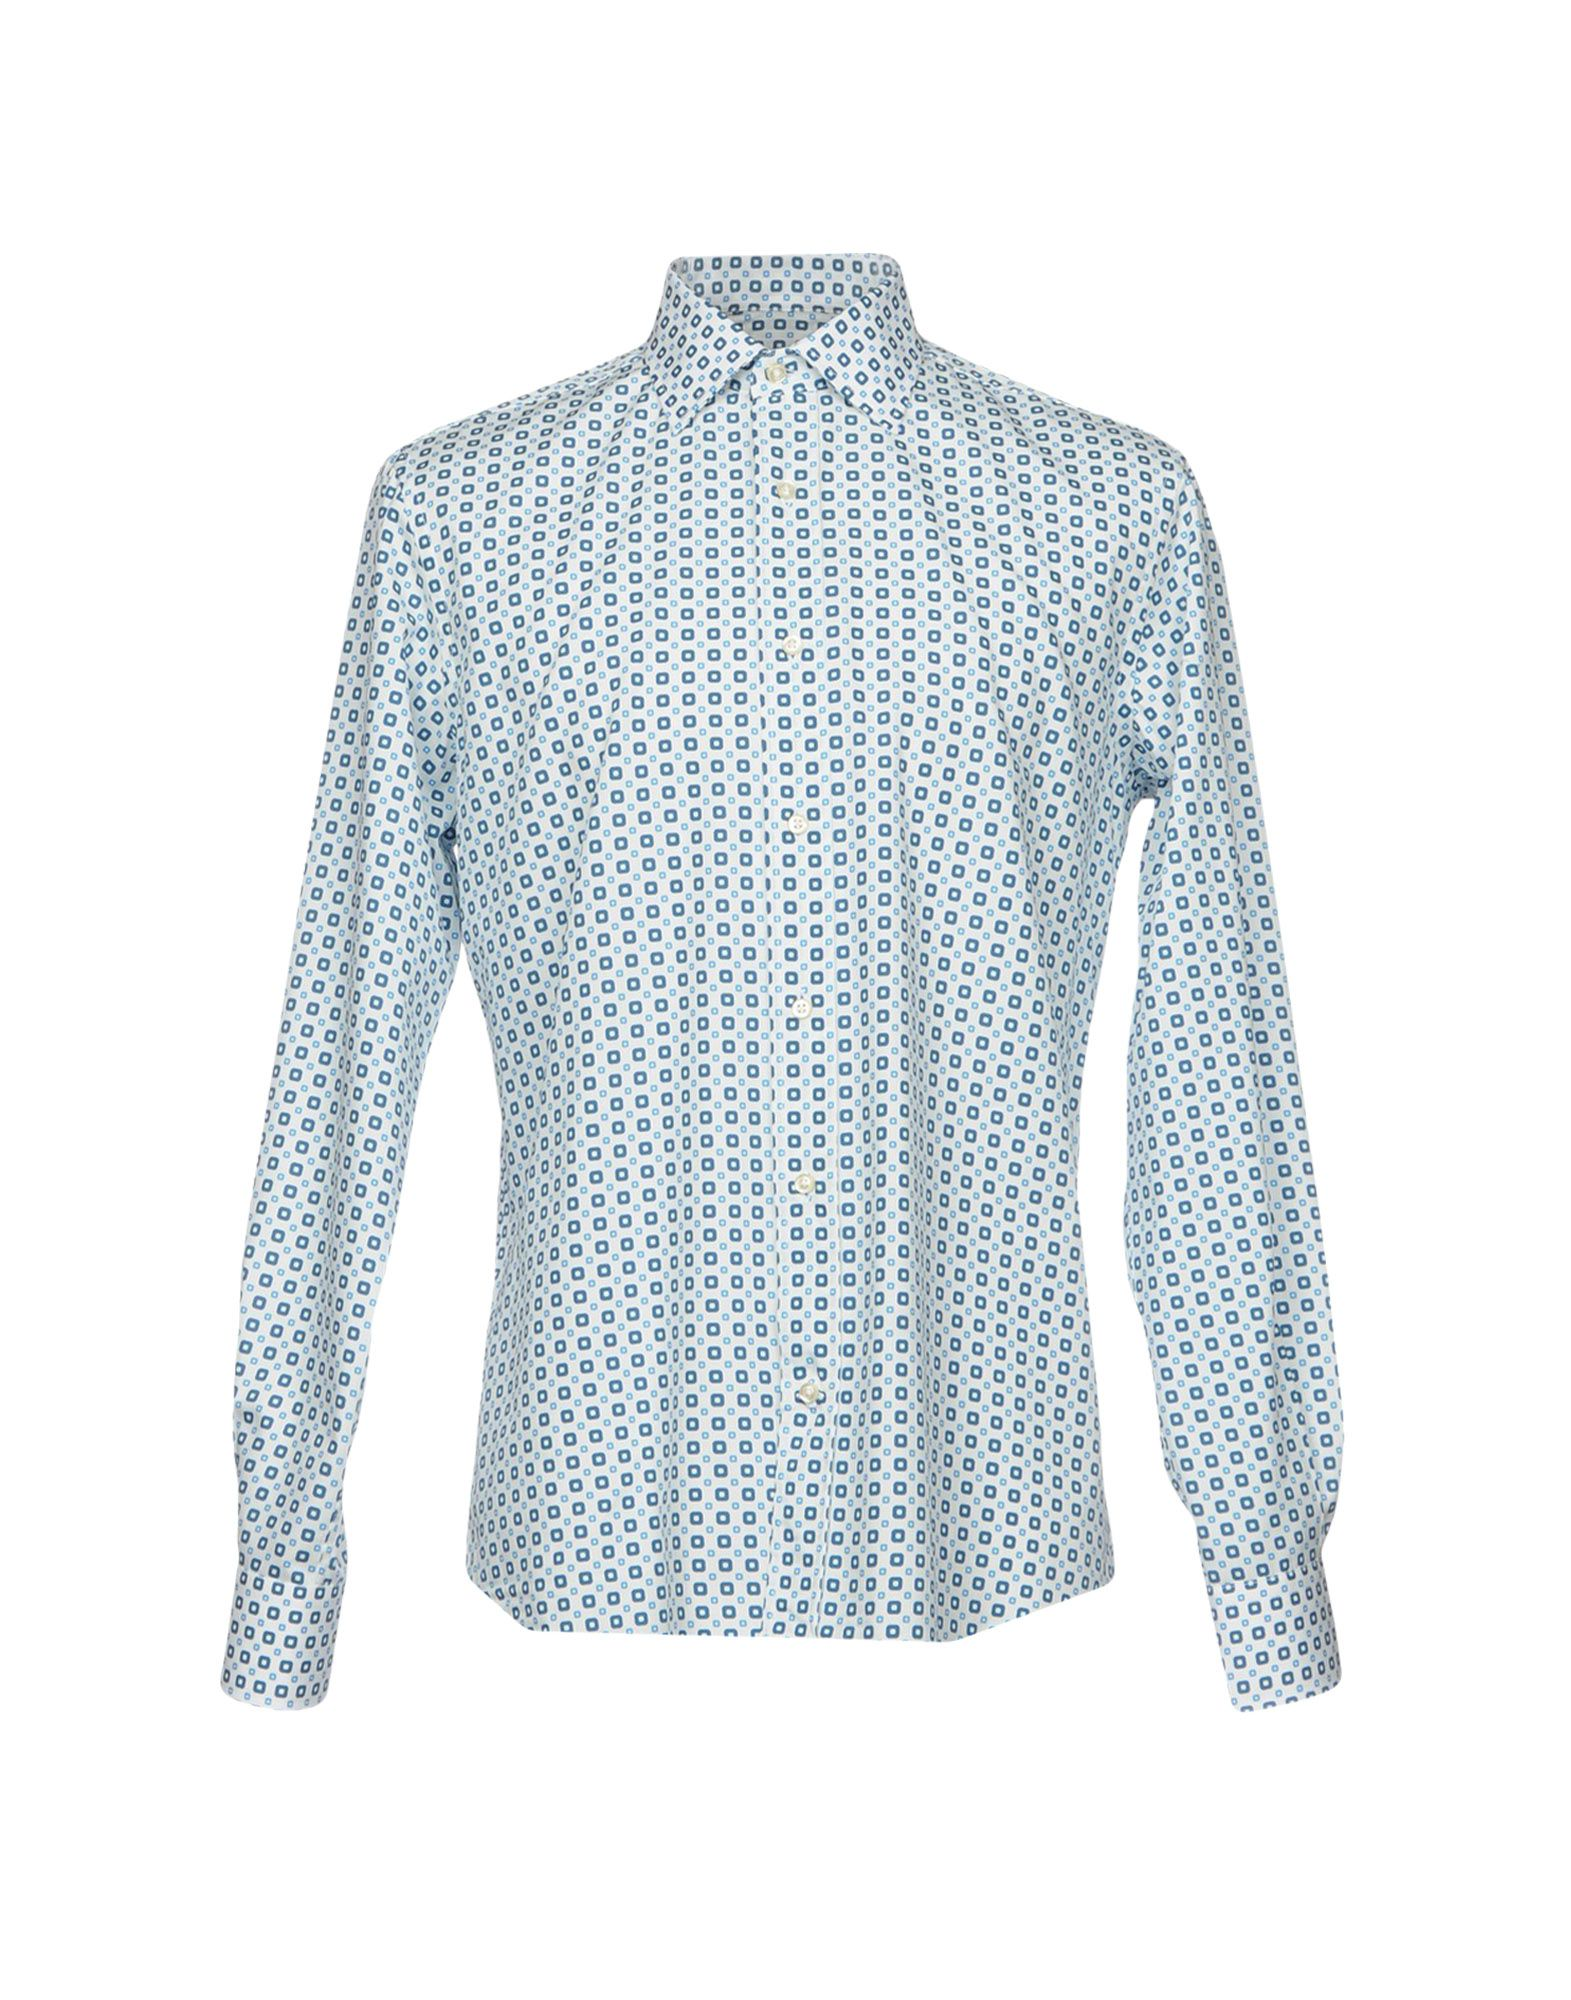 LUCHINO CAMICIE Patterned Shirt in White